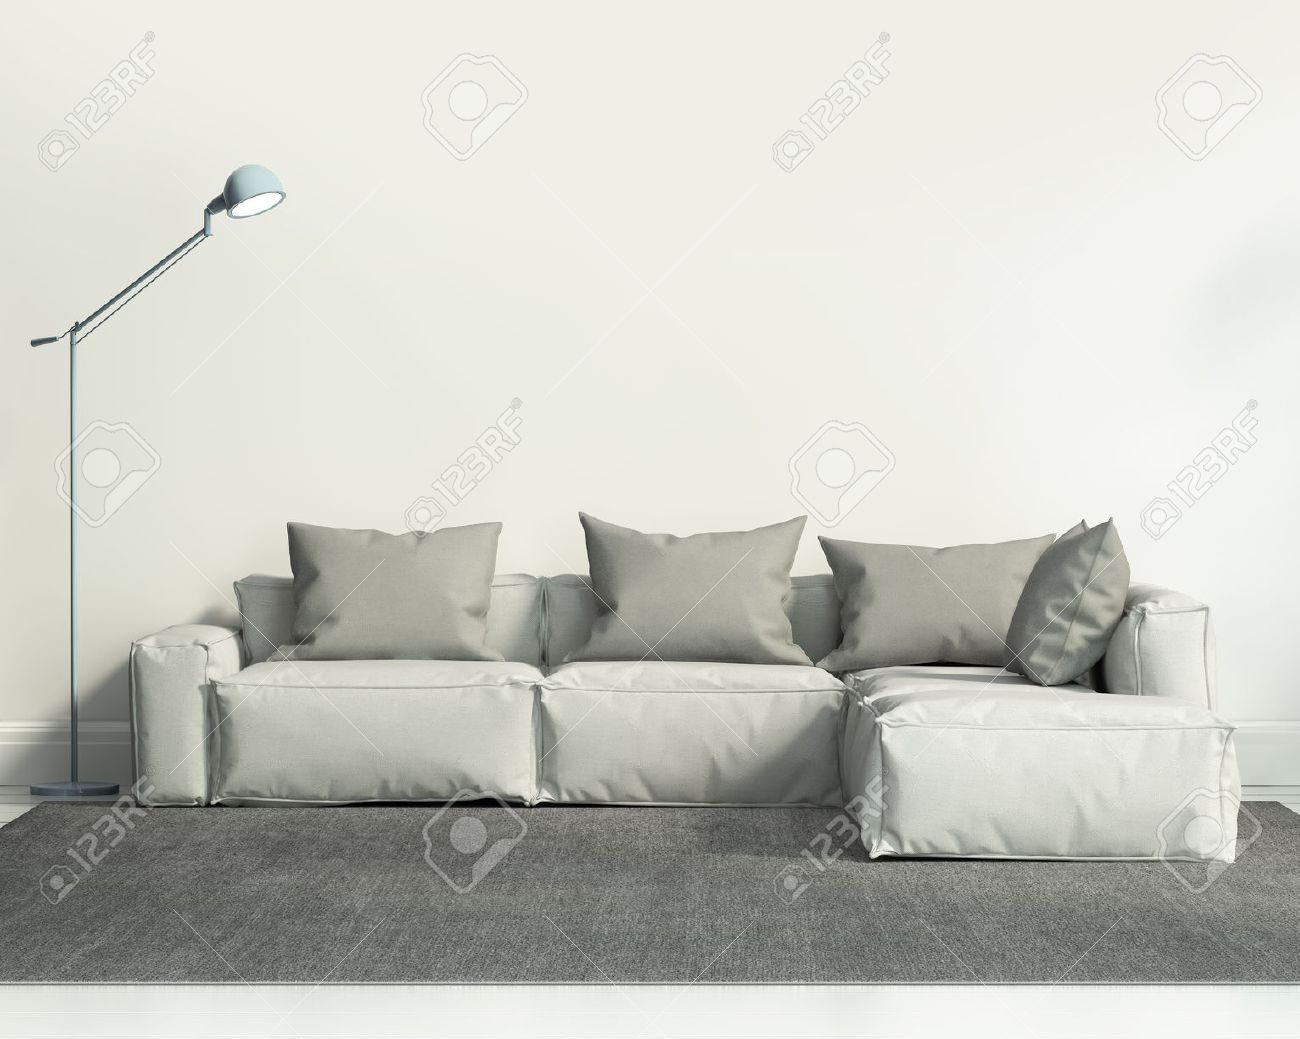 Contemporary White Living Room With Sofa And Grey Rug Stock Photo ...